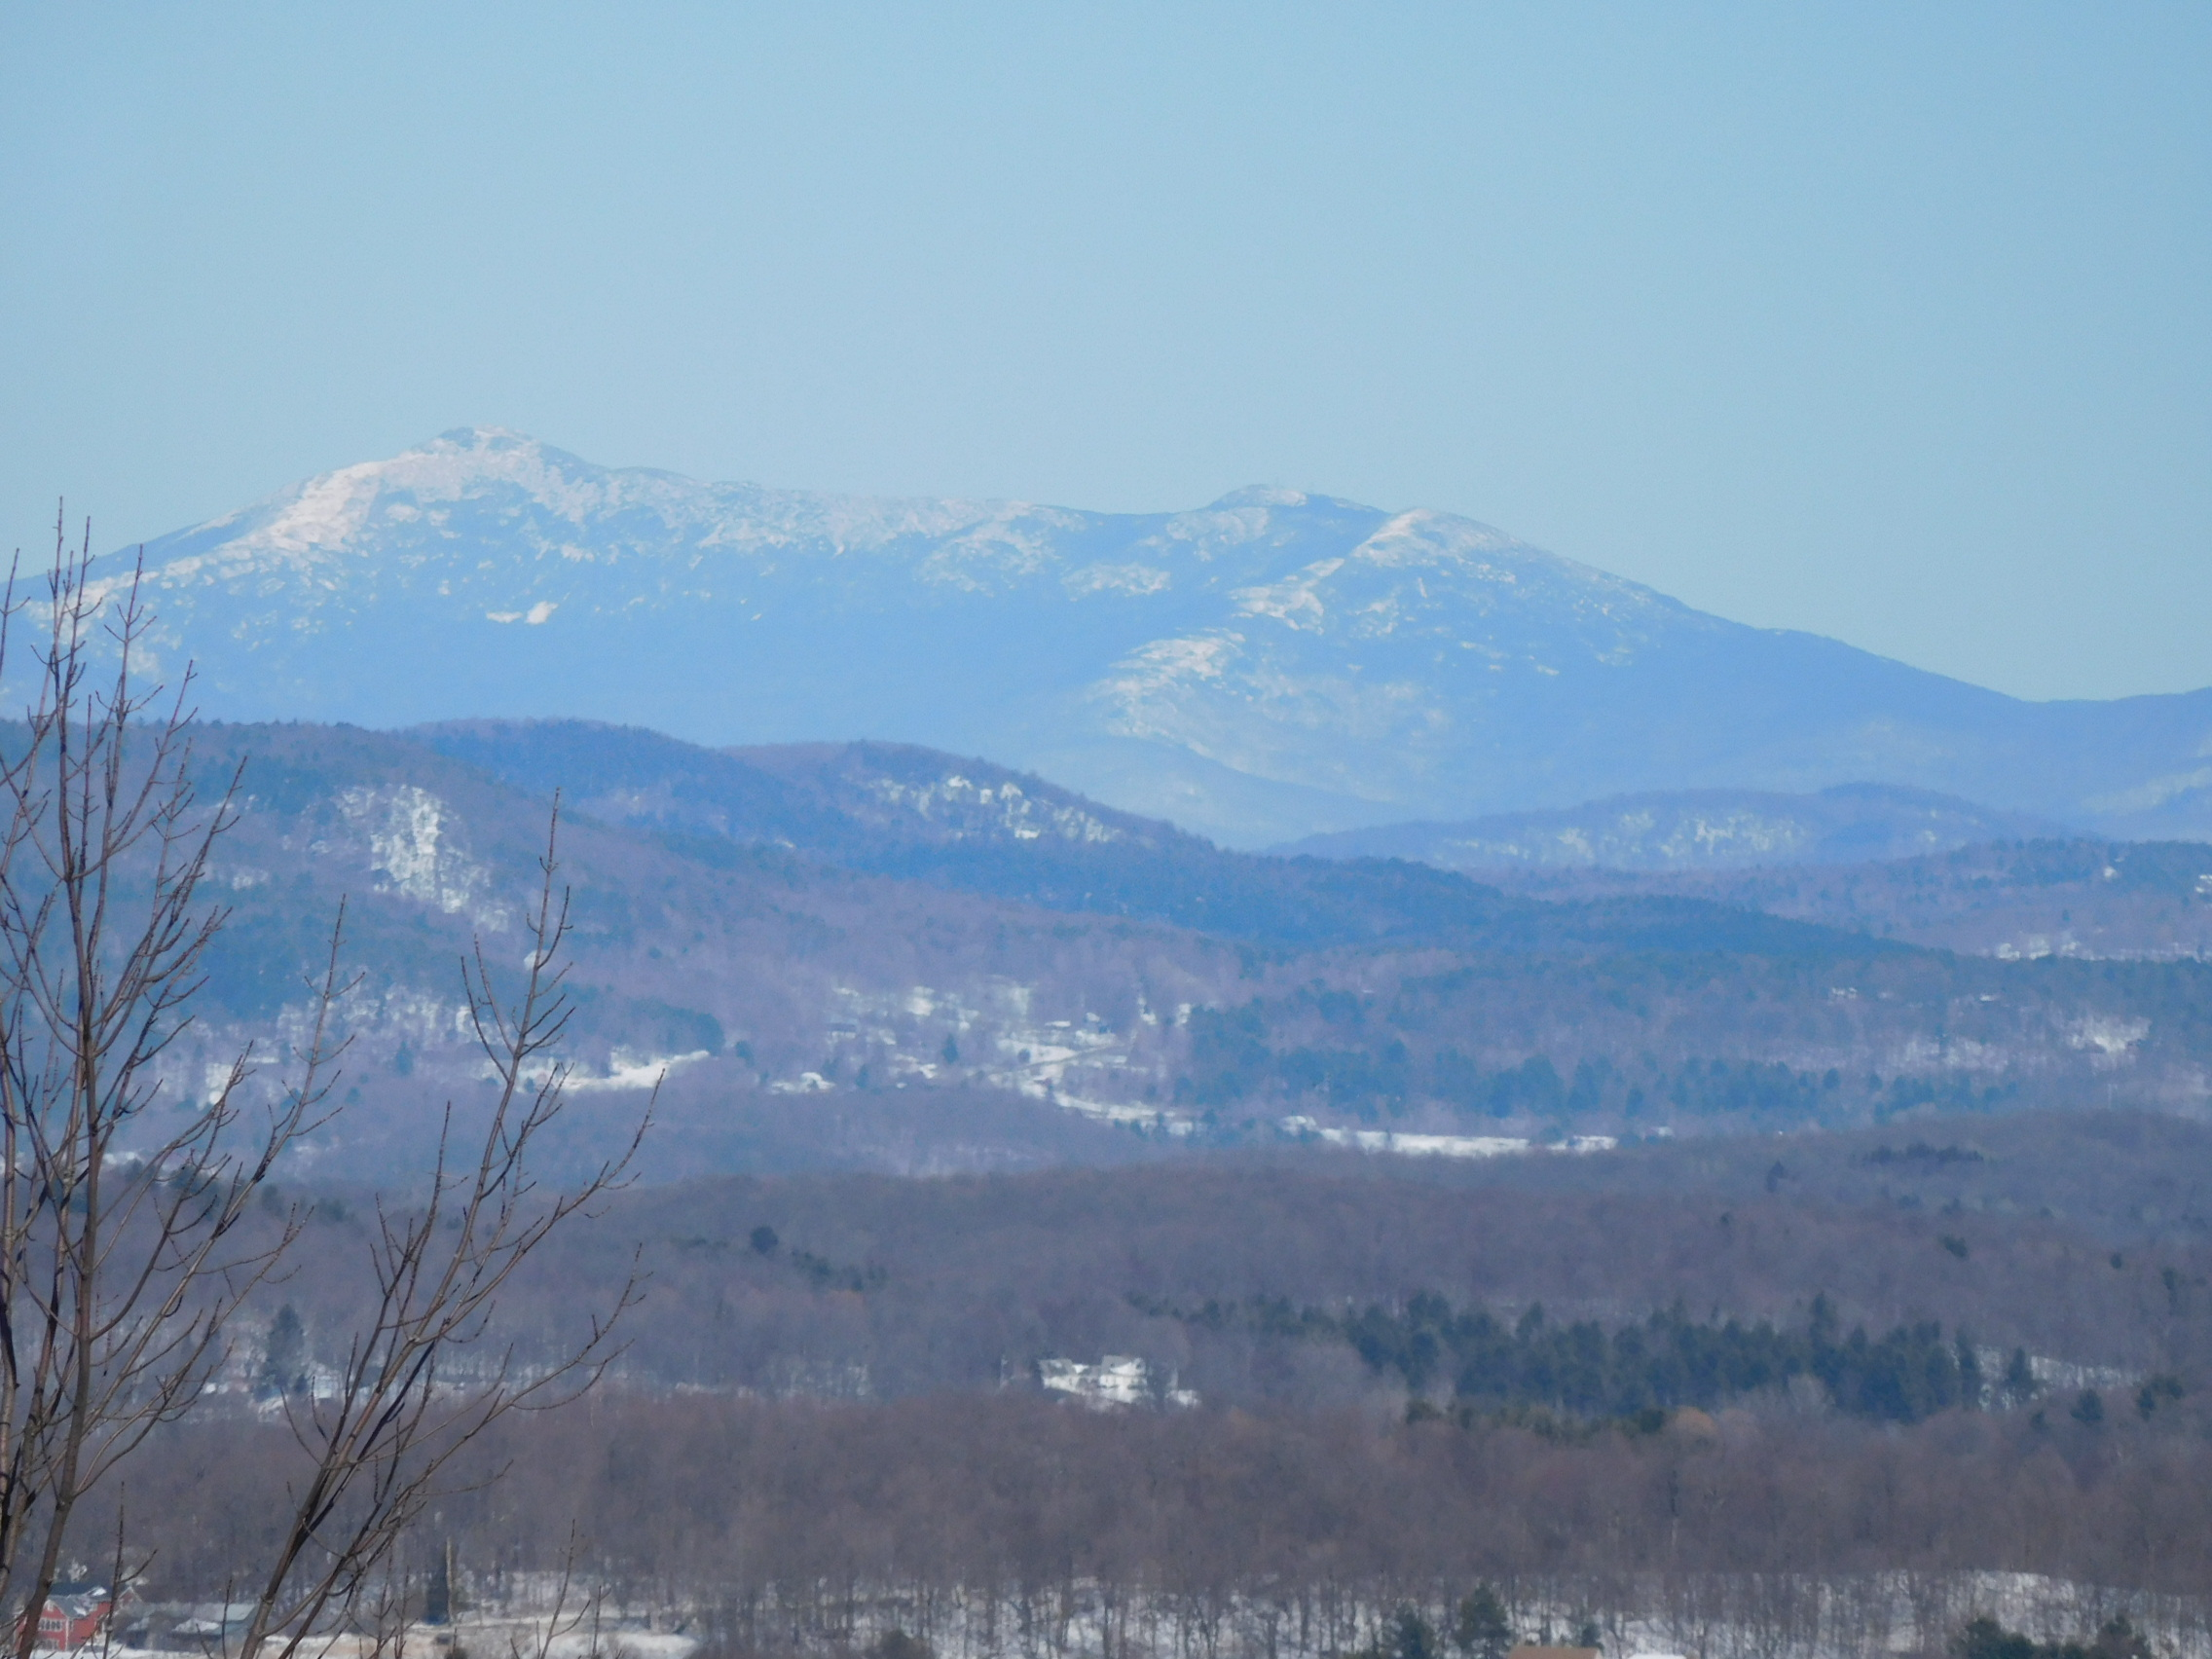 Mt. Mansfield from Philo. Rare accessible 360° views